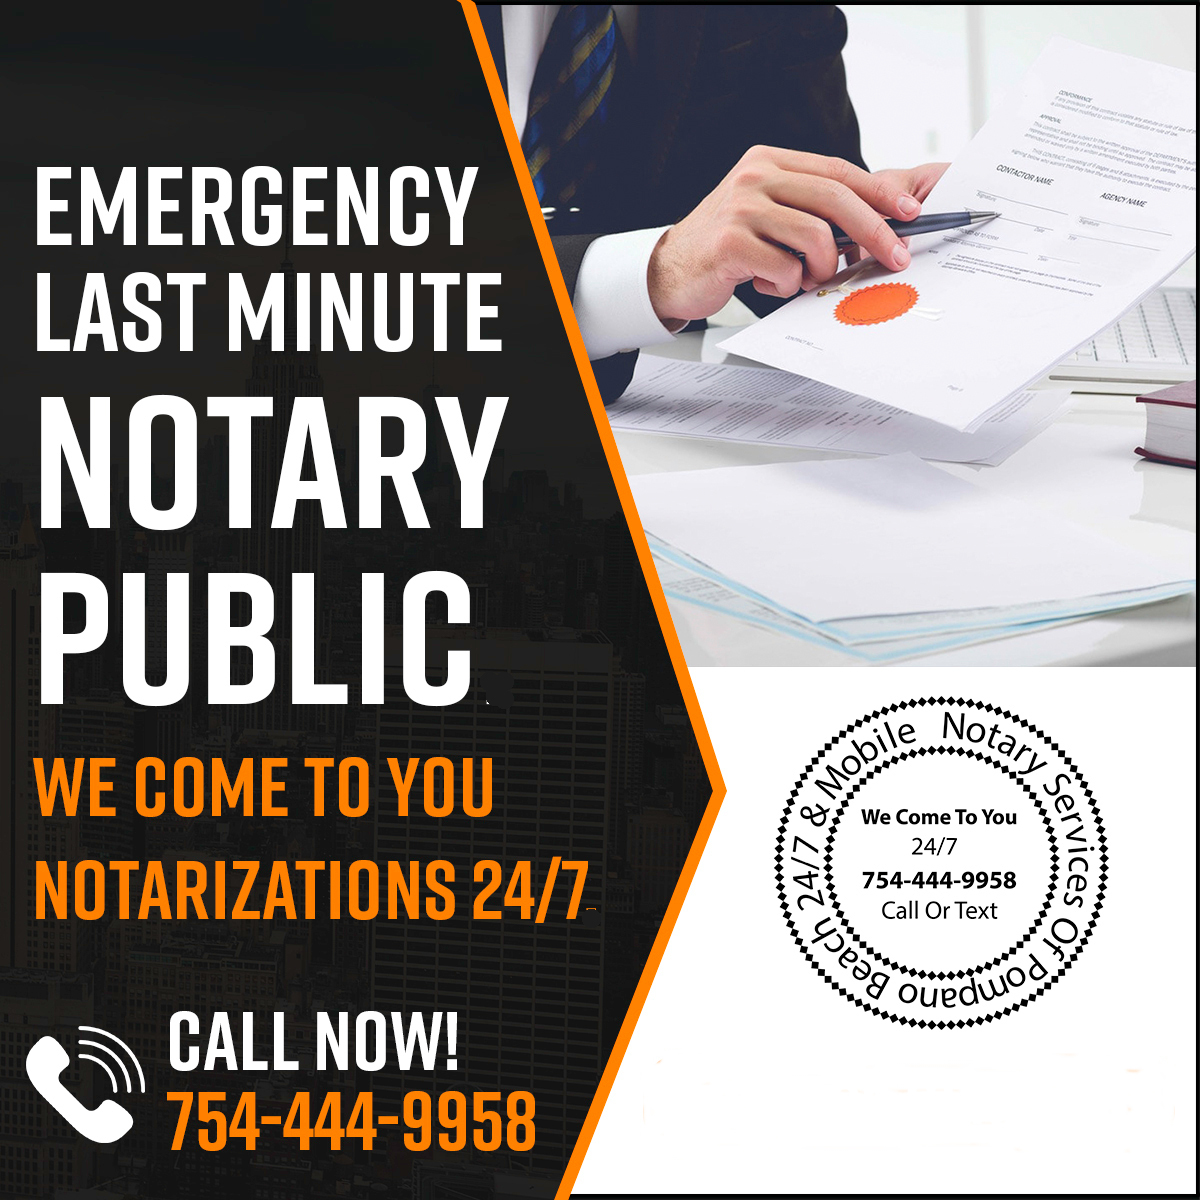 Mobile Notary Public and Witnesses Notarize Trusts @ Your